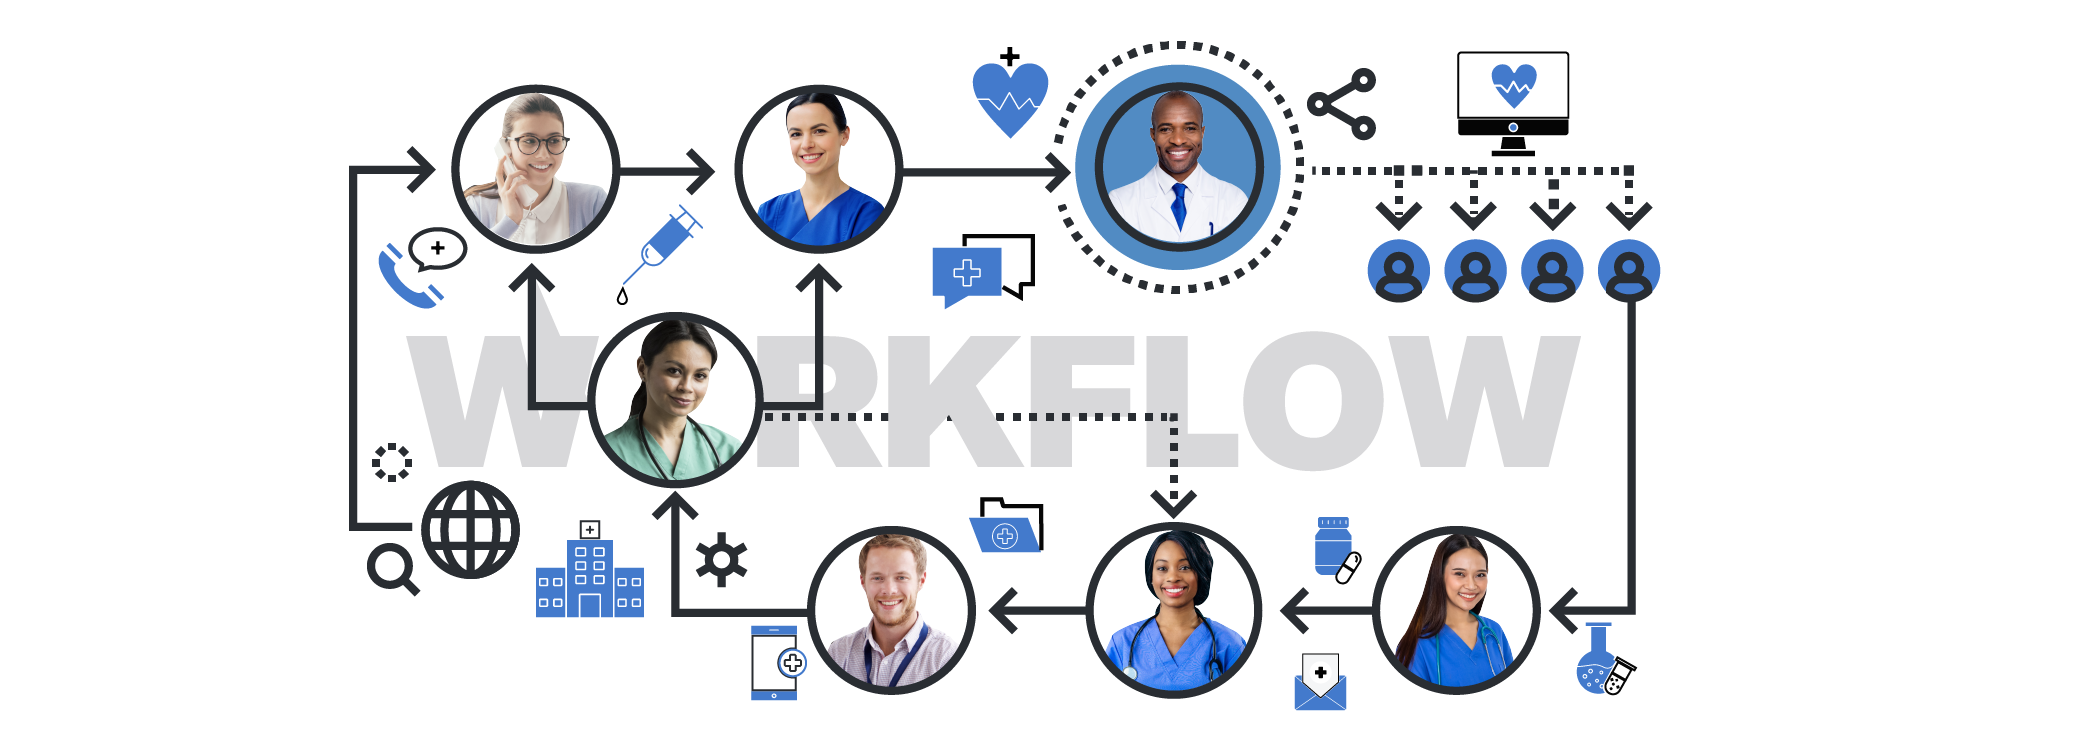 Healthcare workflow different units include in the process: receptionist, non-intensive care, labs